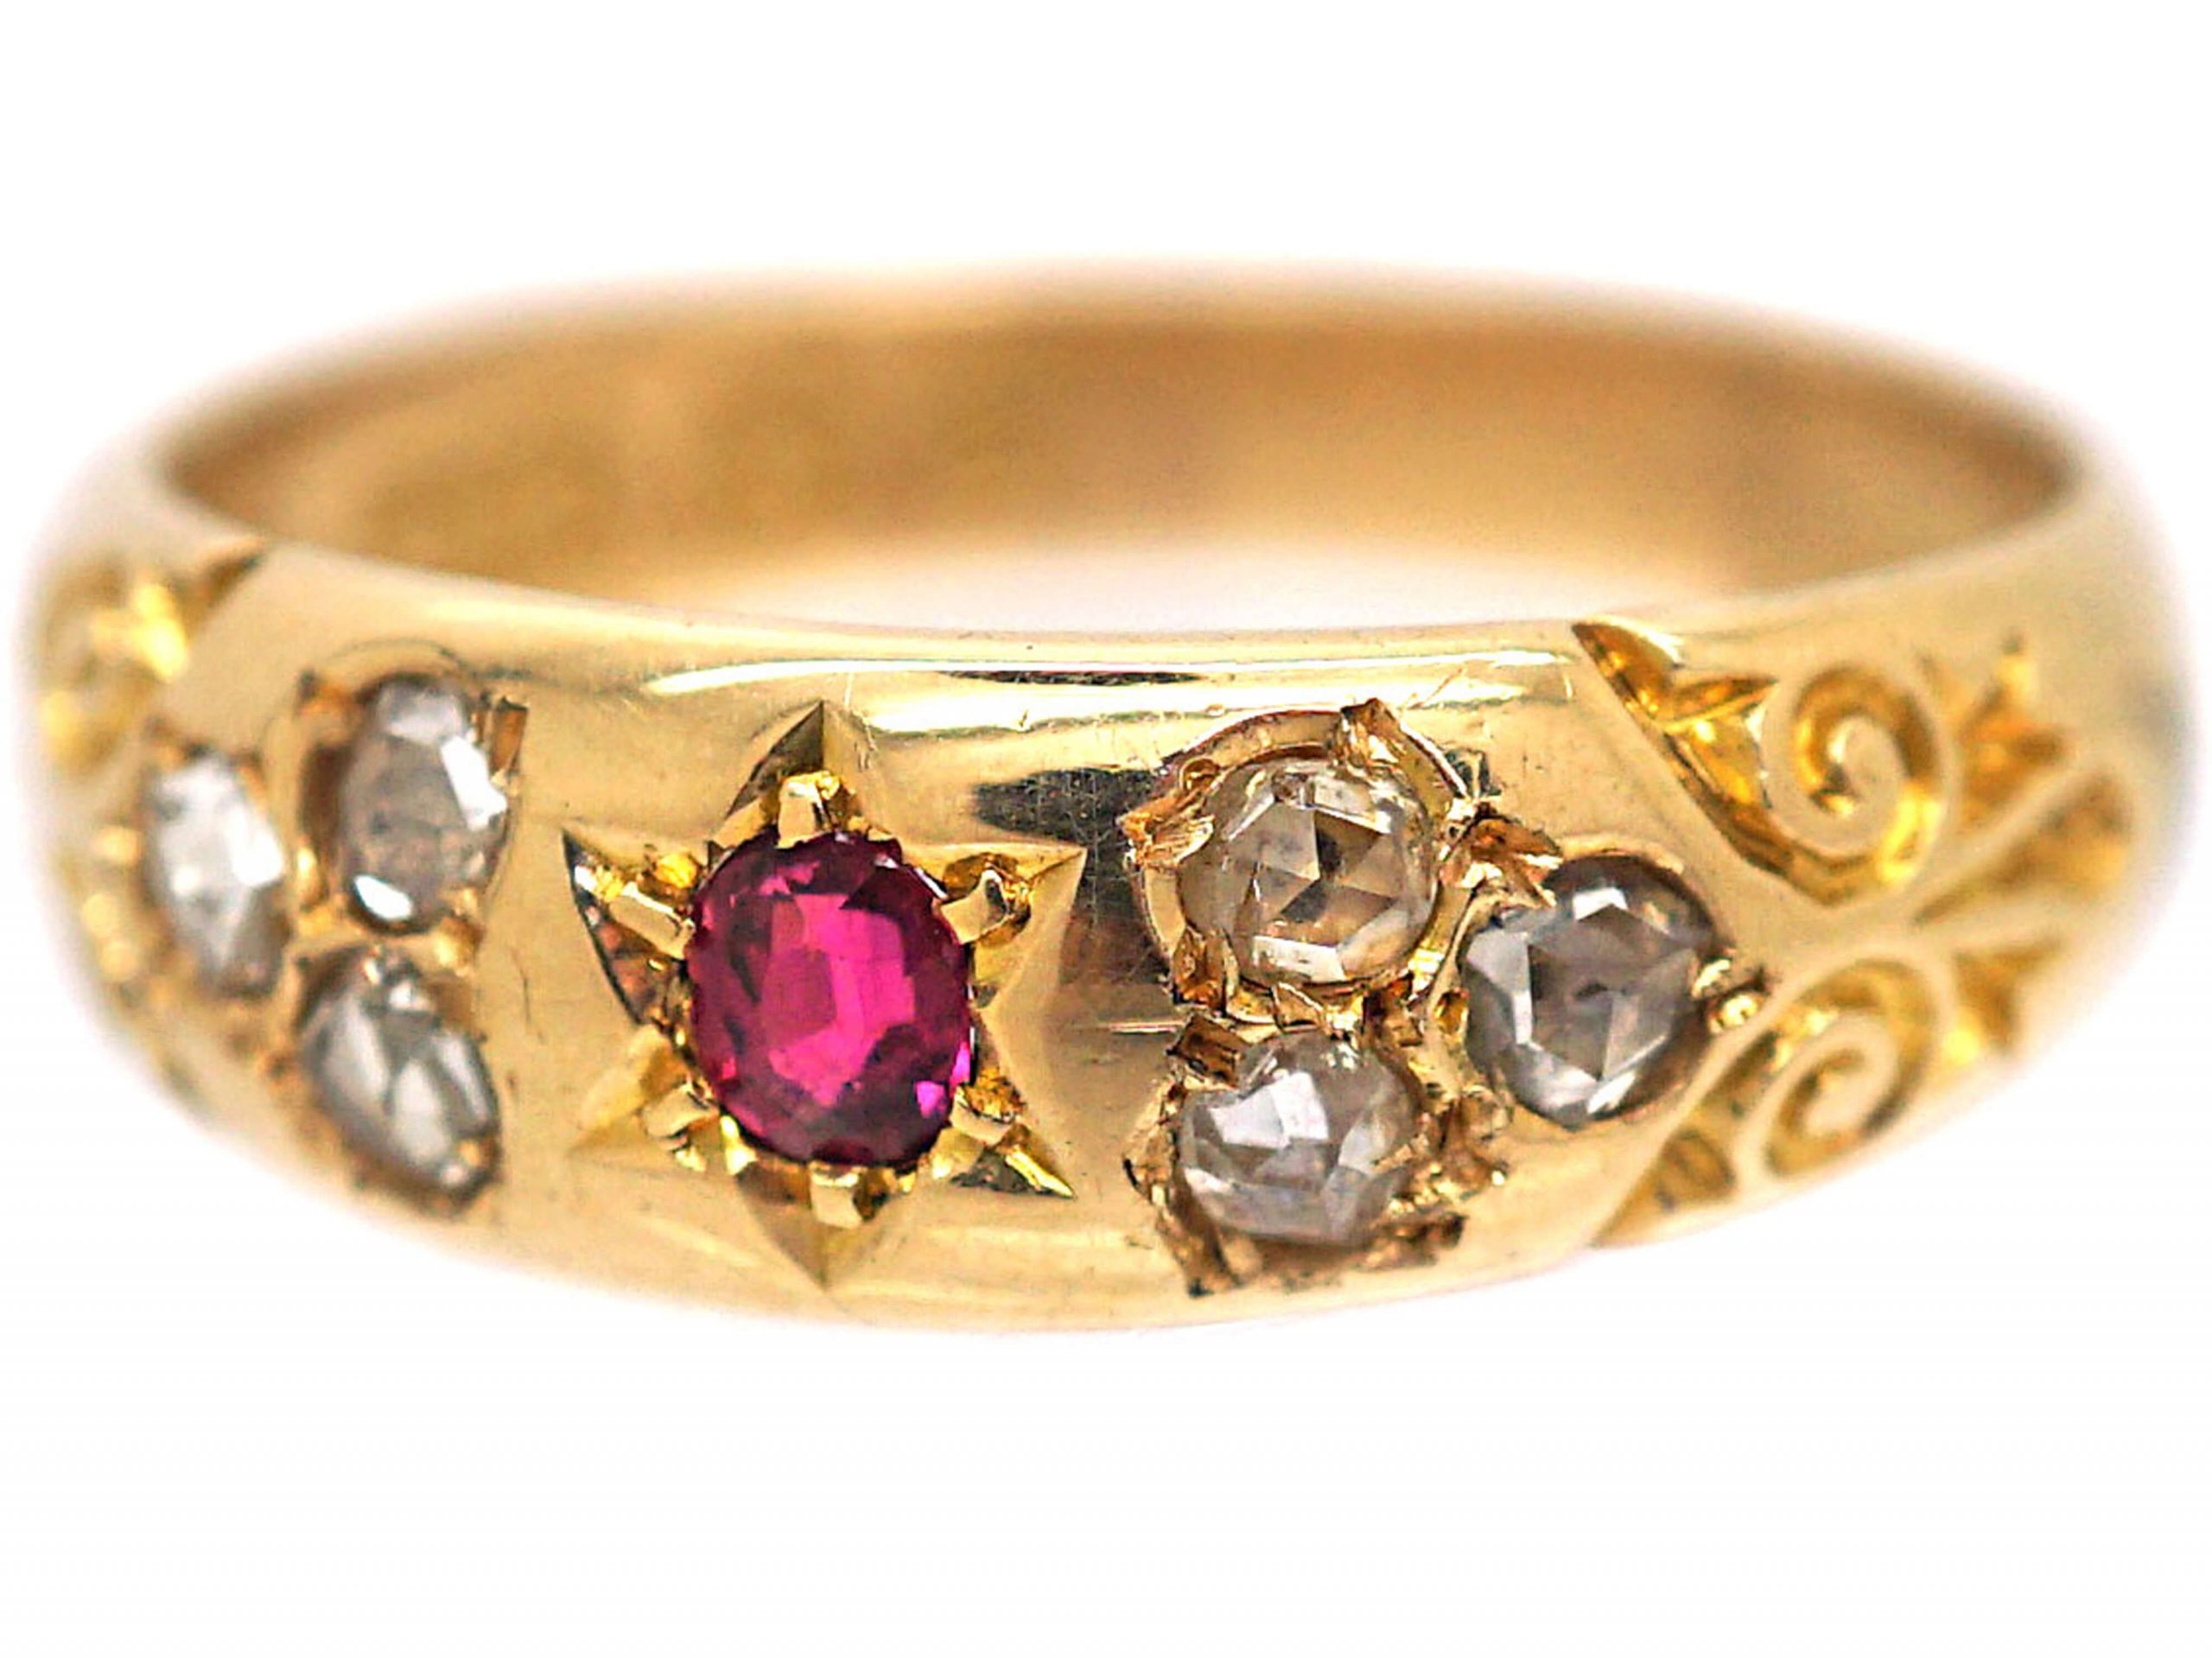 Victorian 18ct Gold, Ruby & Rose Diamond Gypsy Ring with Ornate Shoulders